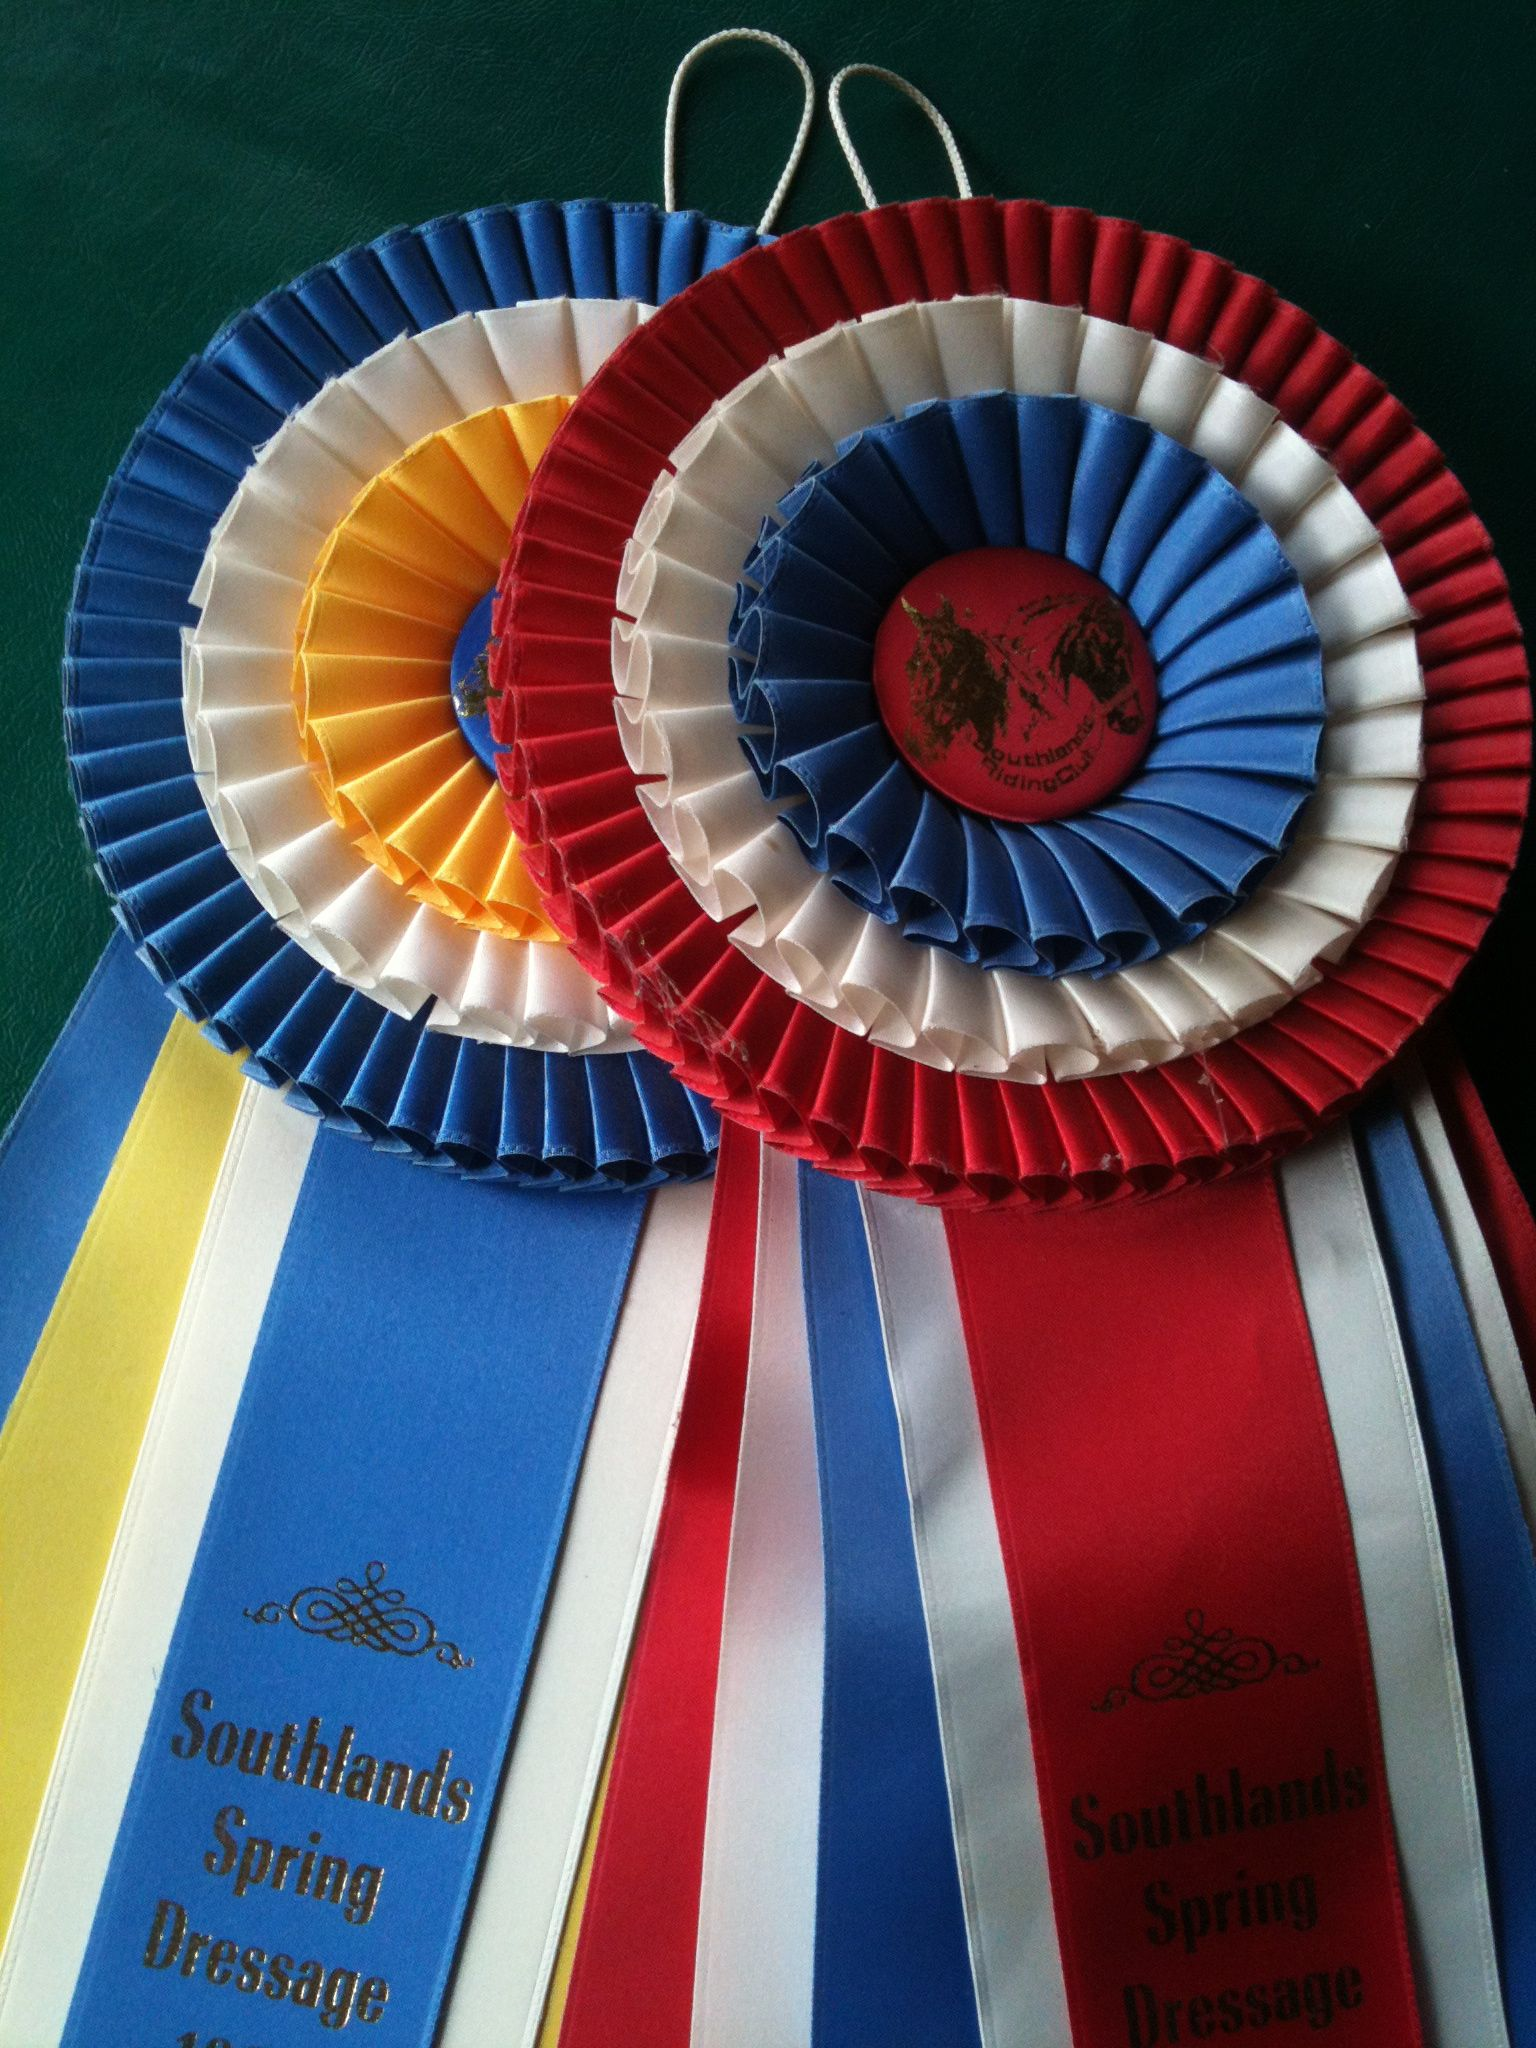 More Creative Ideas in Dressage Shows in BC…